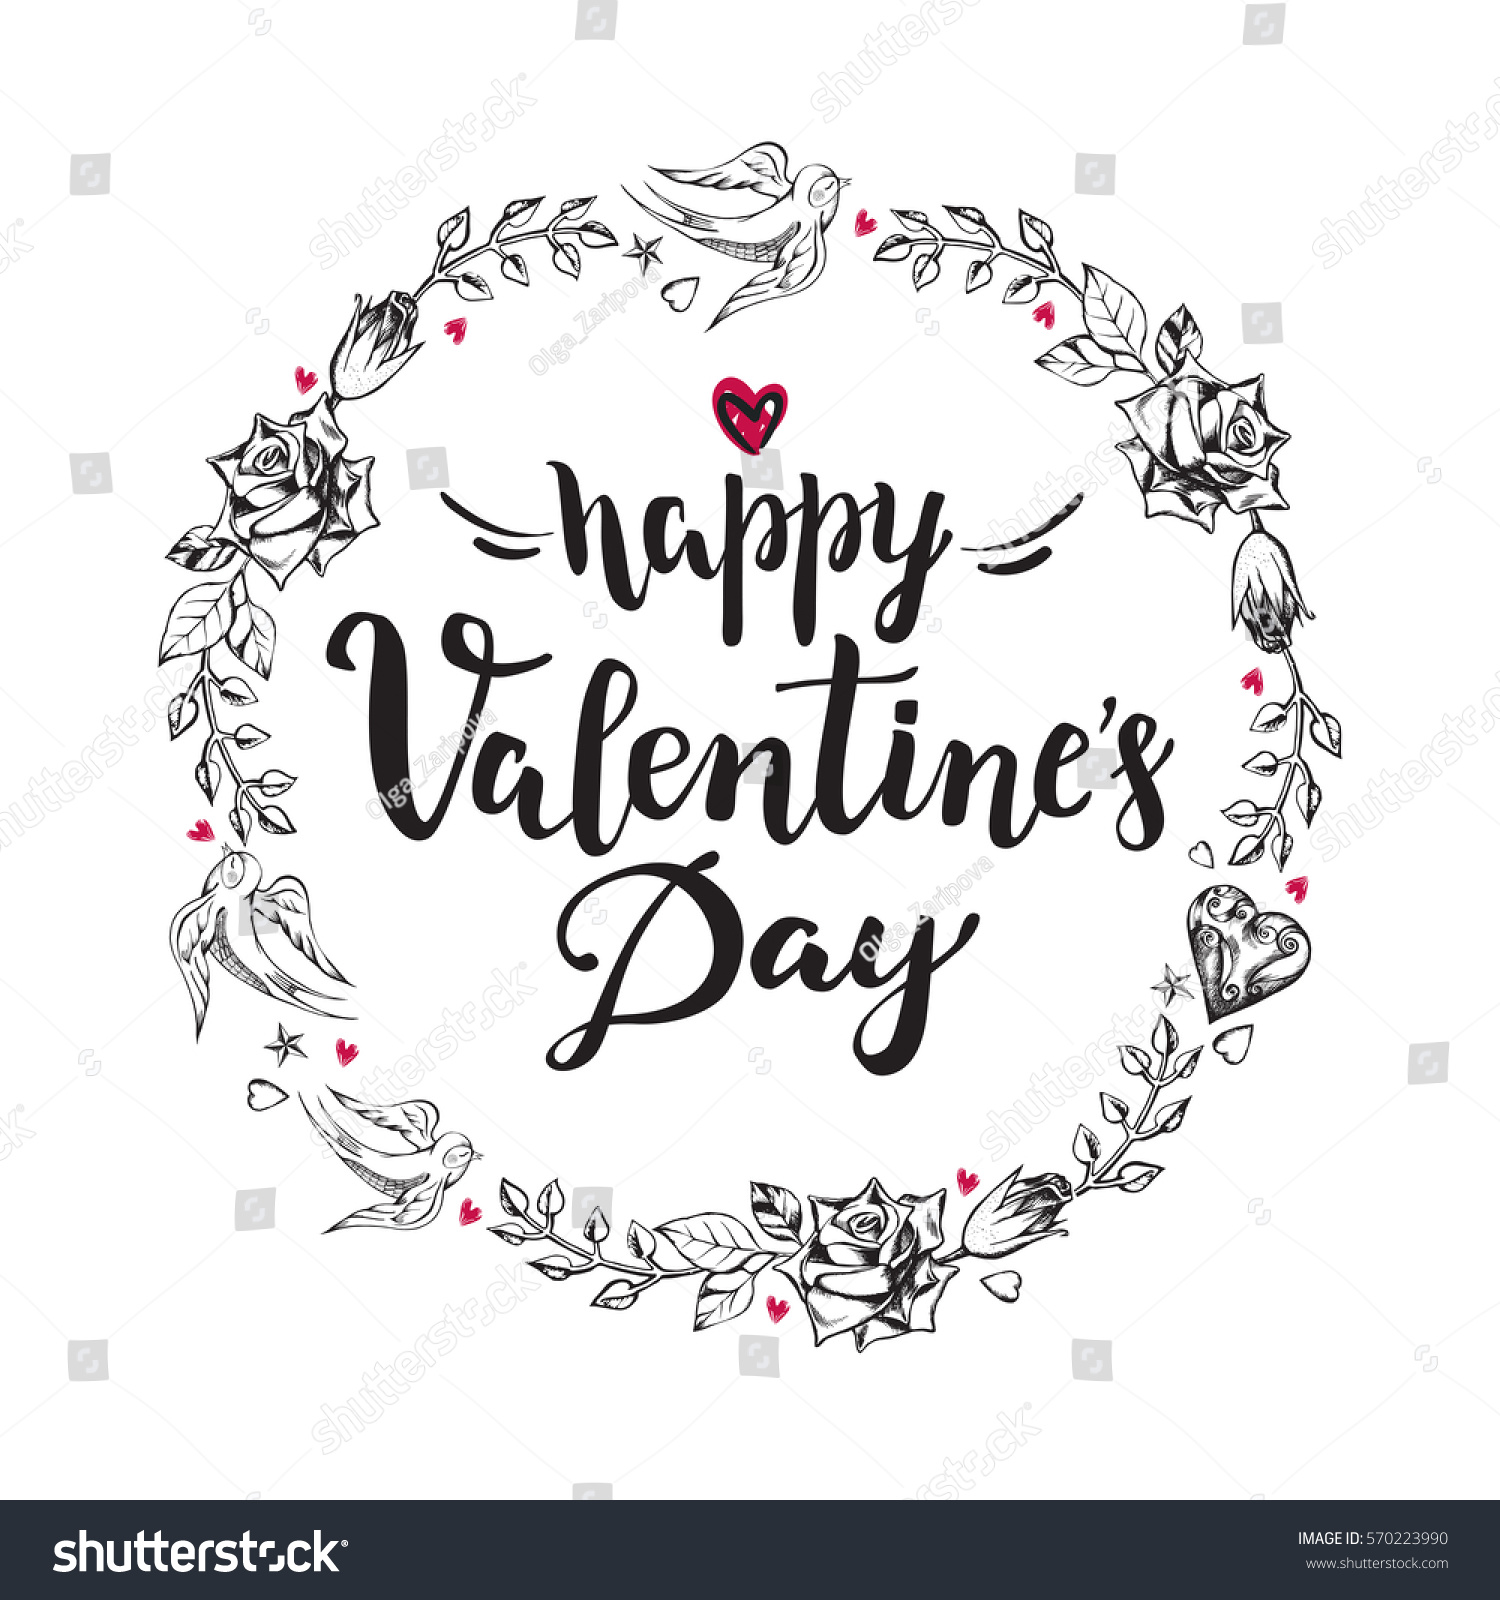 Happy Valentines Day Background Calligraphy Brush Stock Vector